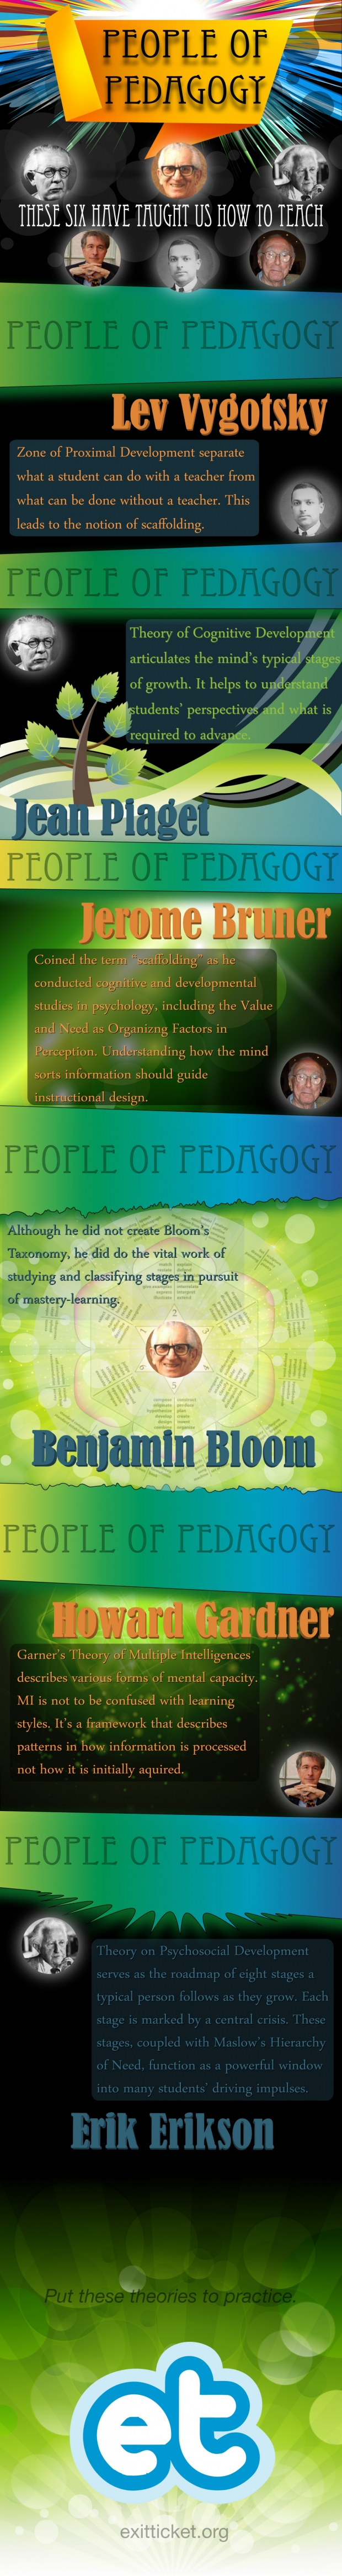 benjamin bloom theory of mastery learning